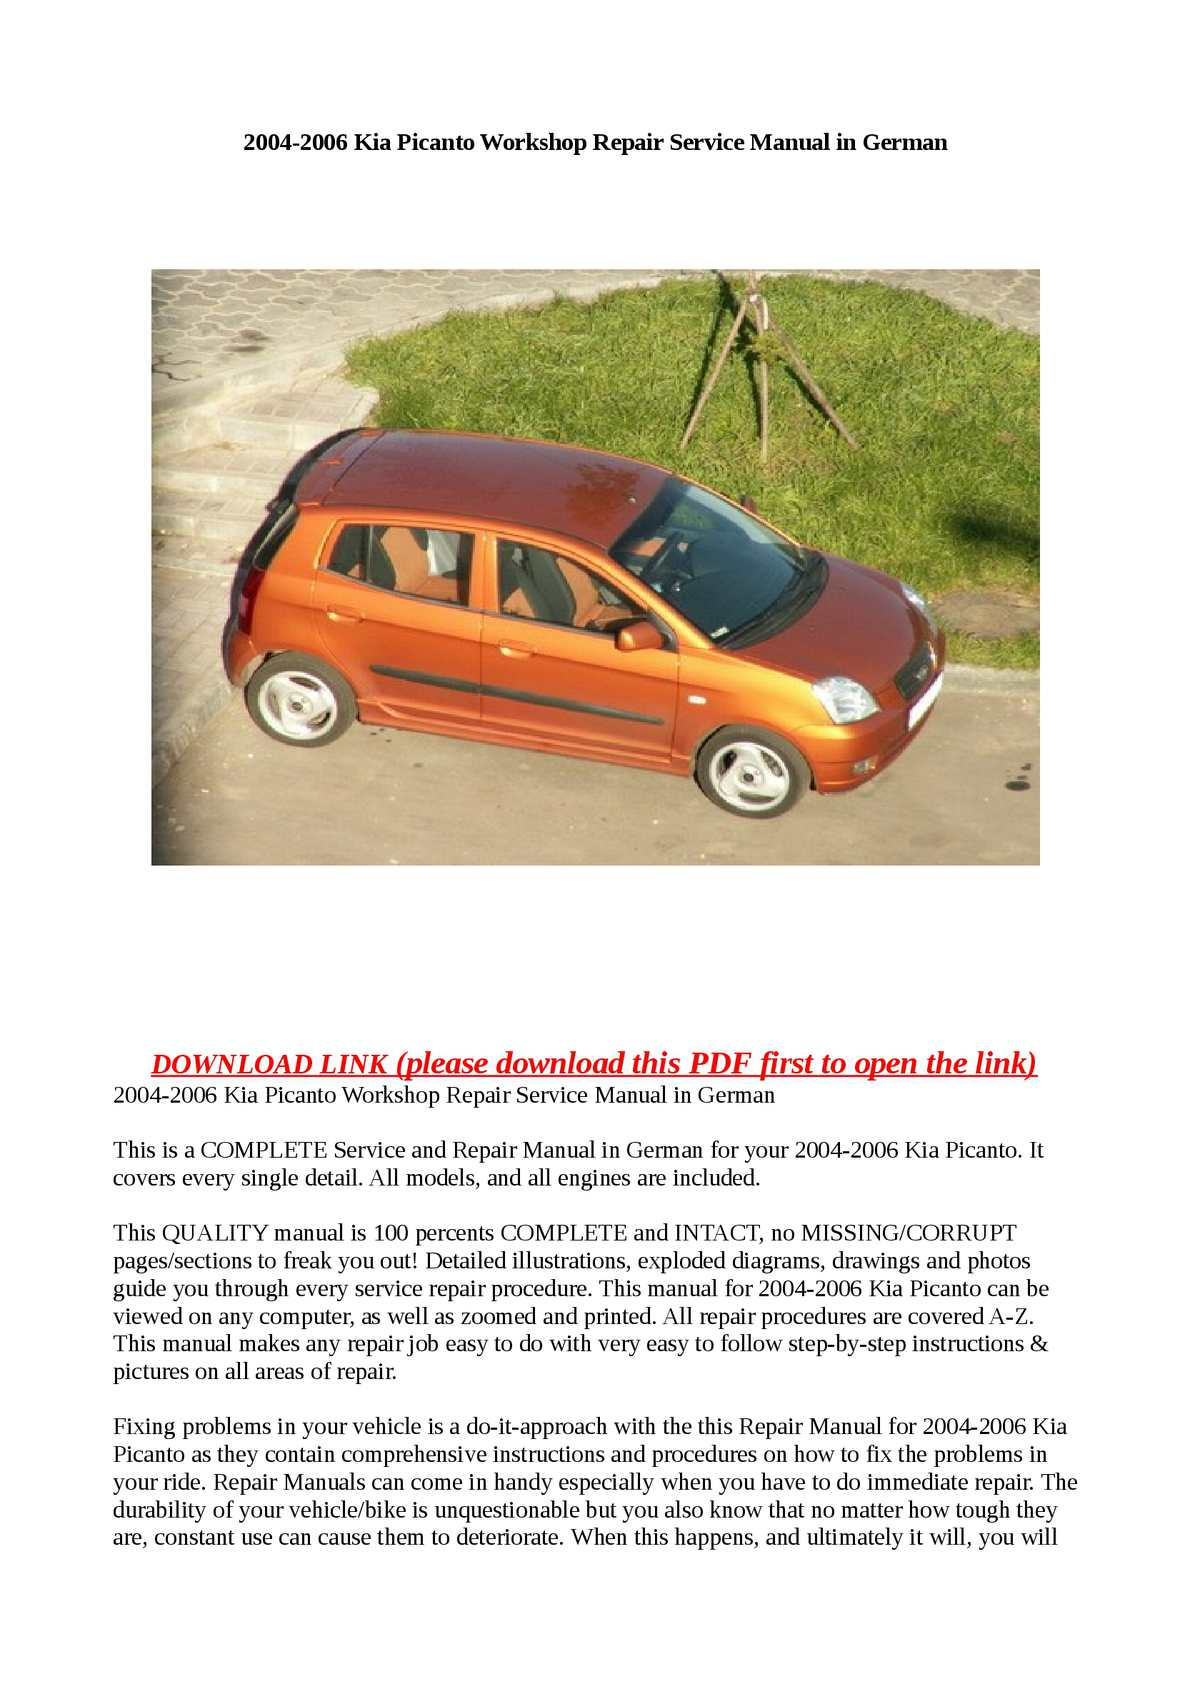 Calamo 2004 2006 kia picanto workshop repair service manual in german cheapraybanclubmaster